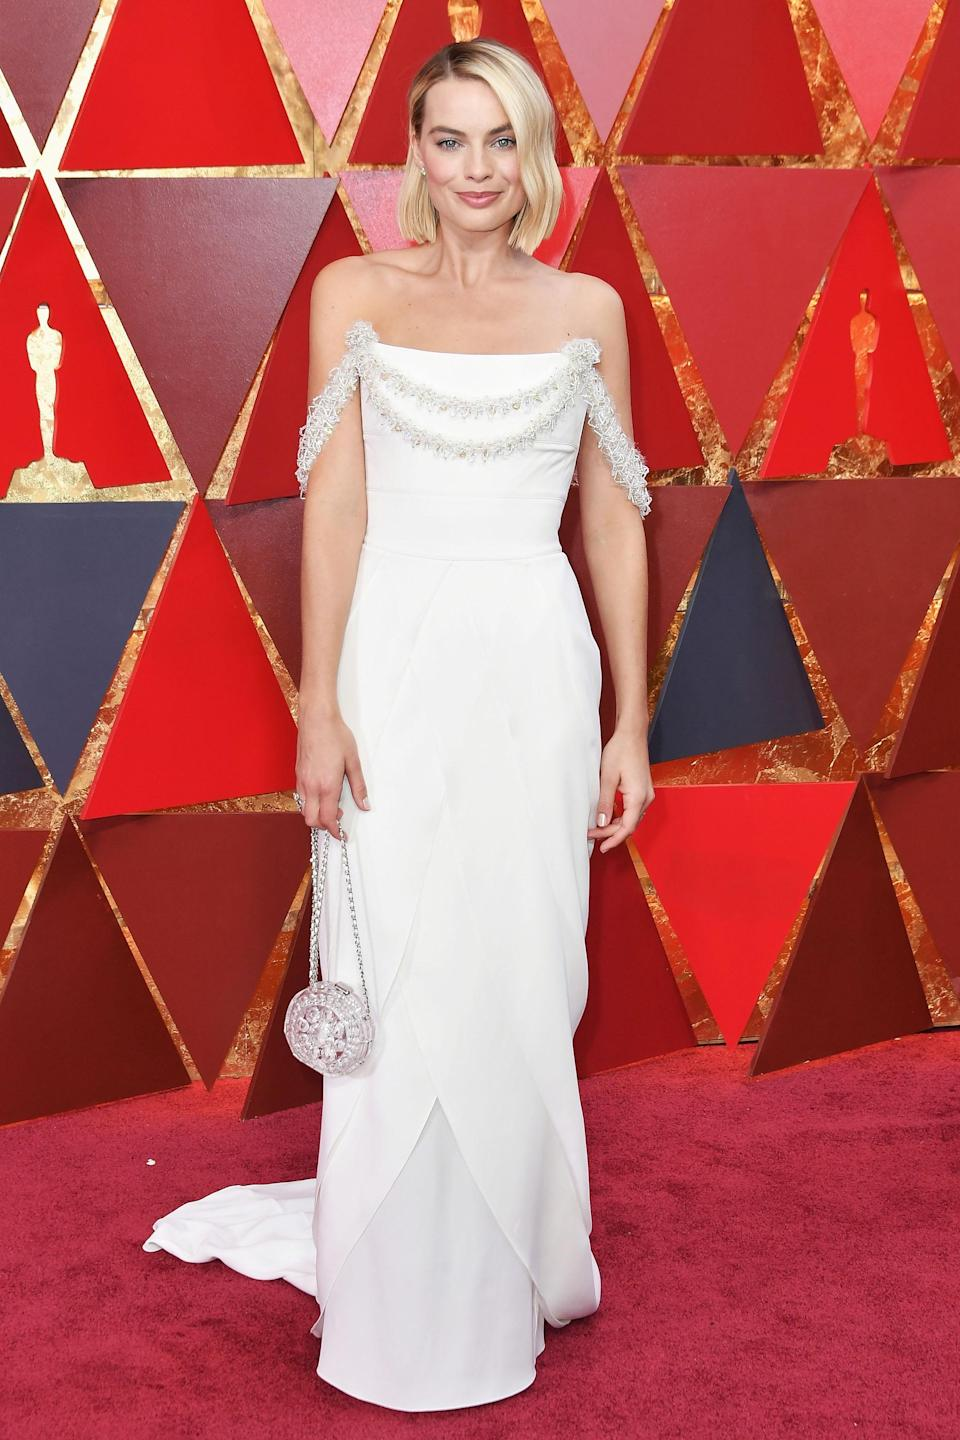 """<h2>Margot Robbie, 2018</h2><br>Margot Robbie was a breath of fresh air in this showstopping white gown courtesy of Chanel.<br><br><em>Margot Robbie in Chanel.</em><span class=""""copyright"""">Photo: Neilson Barnard/Getty Images.</span>"""